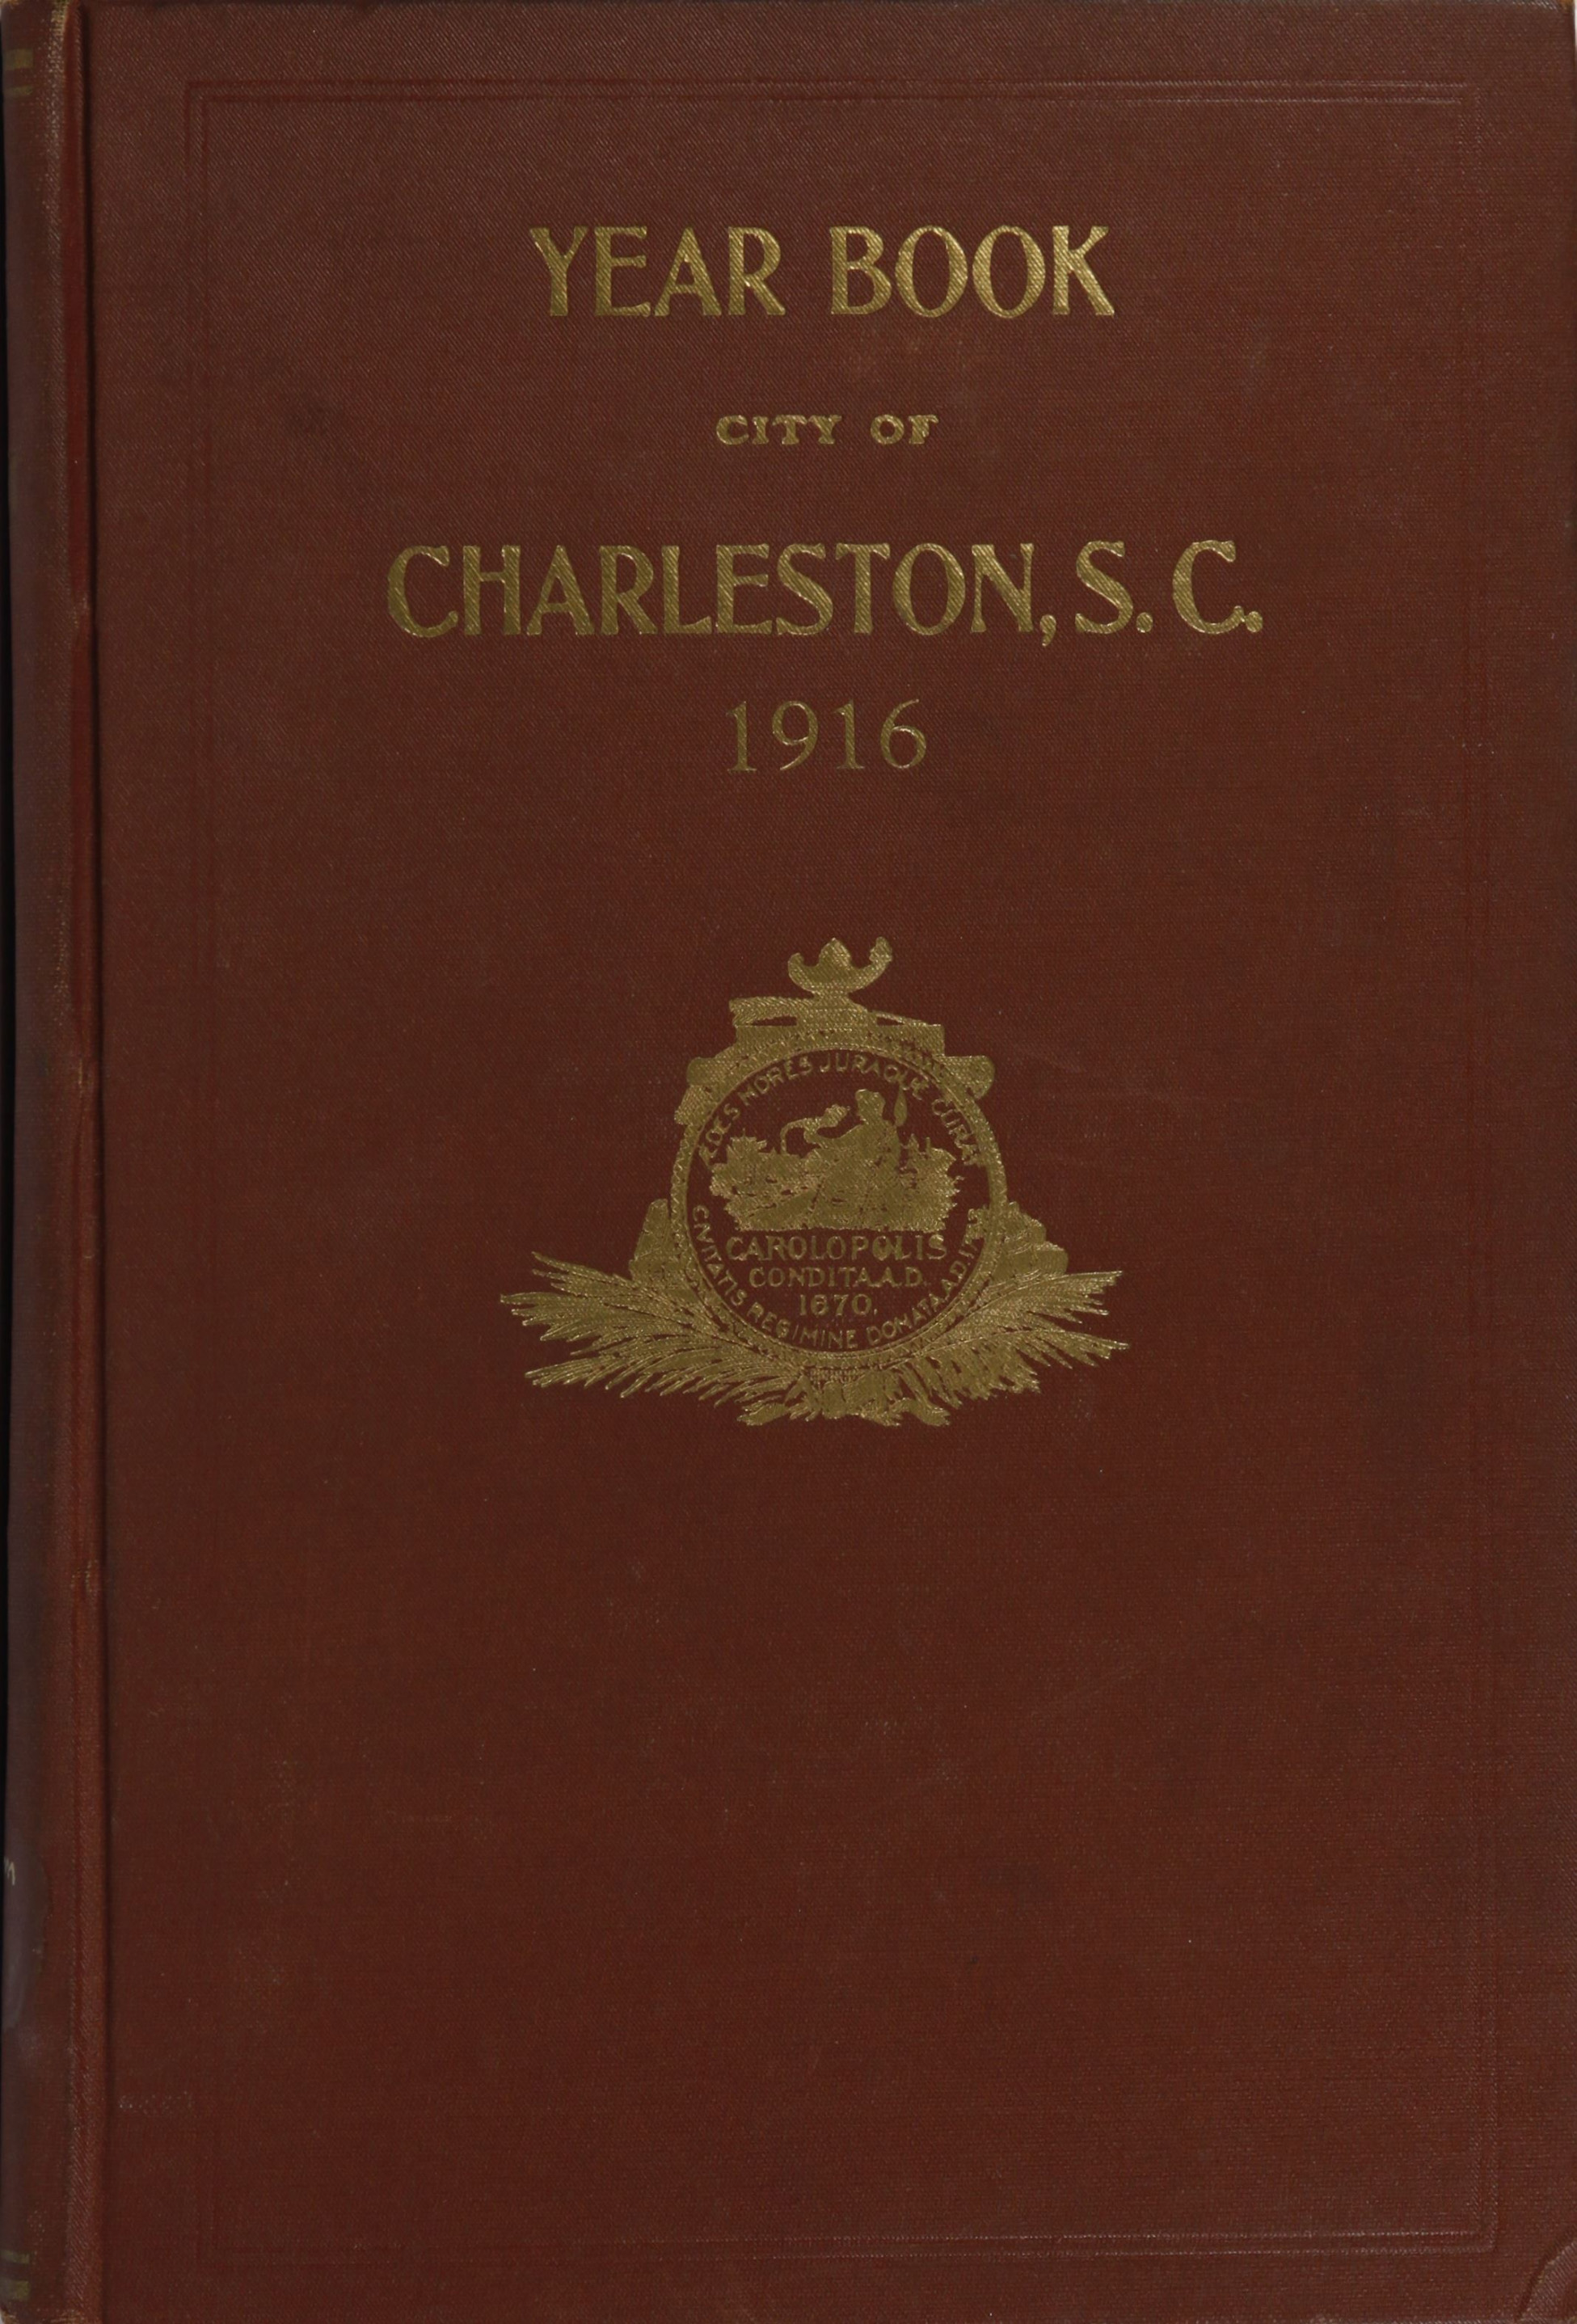 Charleston Yearbook, 1916, cover